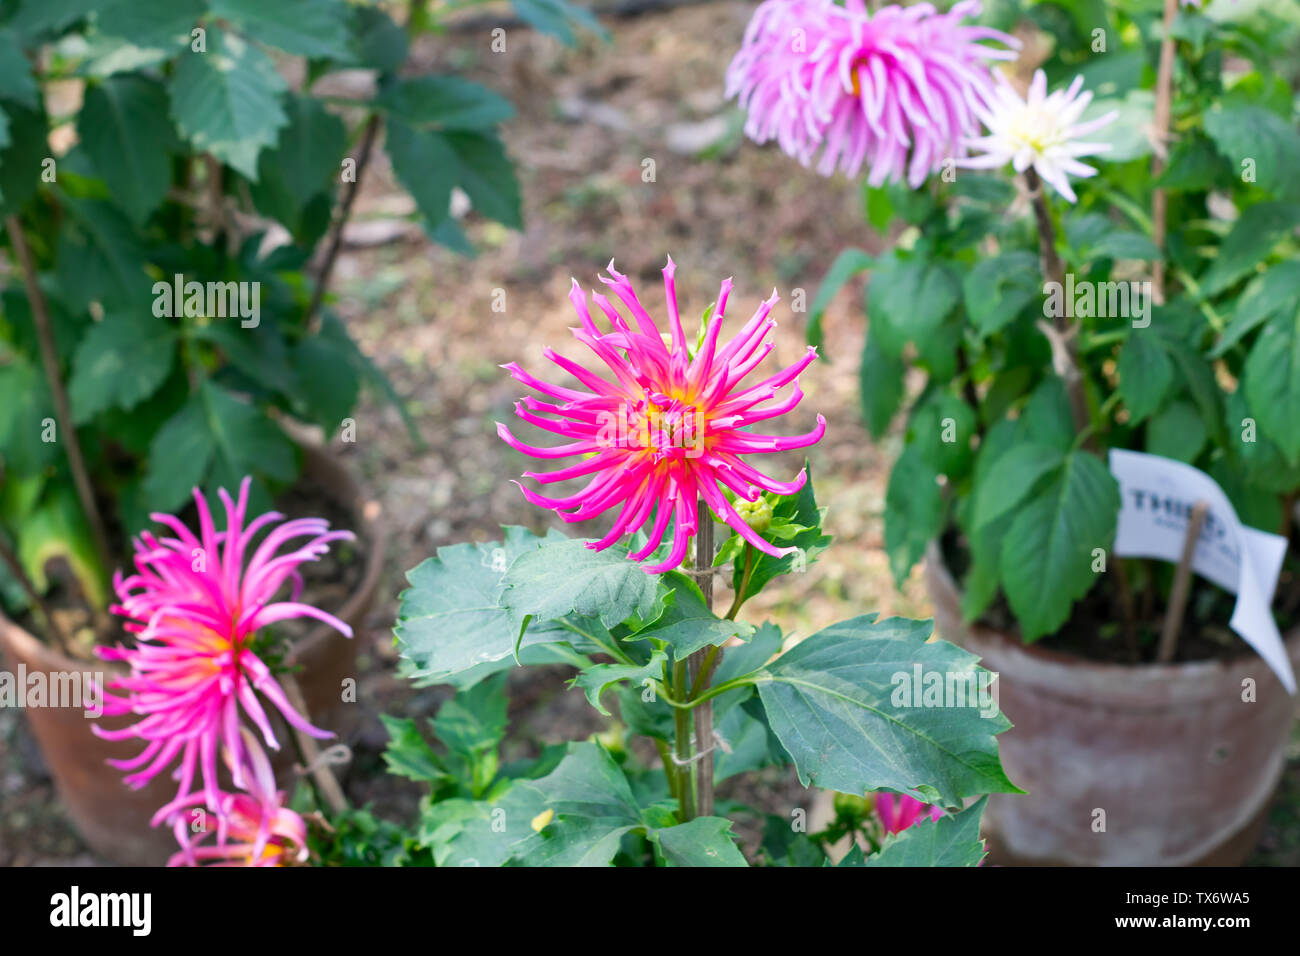 Pink color Chives or Allium shape Chrysanthemum flower. A sun loving flora blooms in early spring to late summer. A very popular for bouquets. Its col - Stock Image